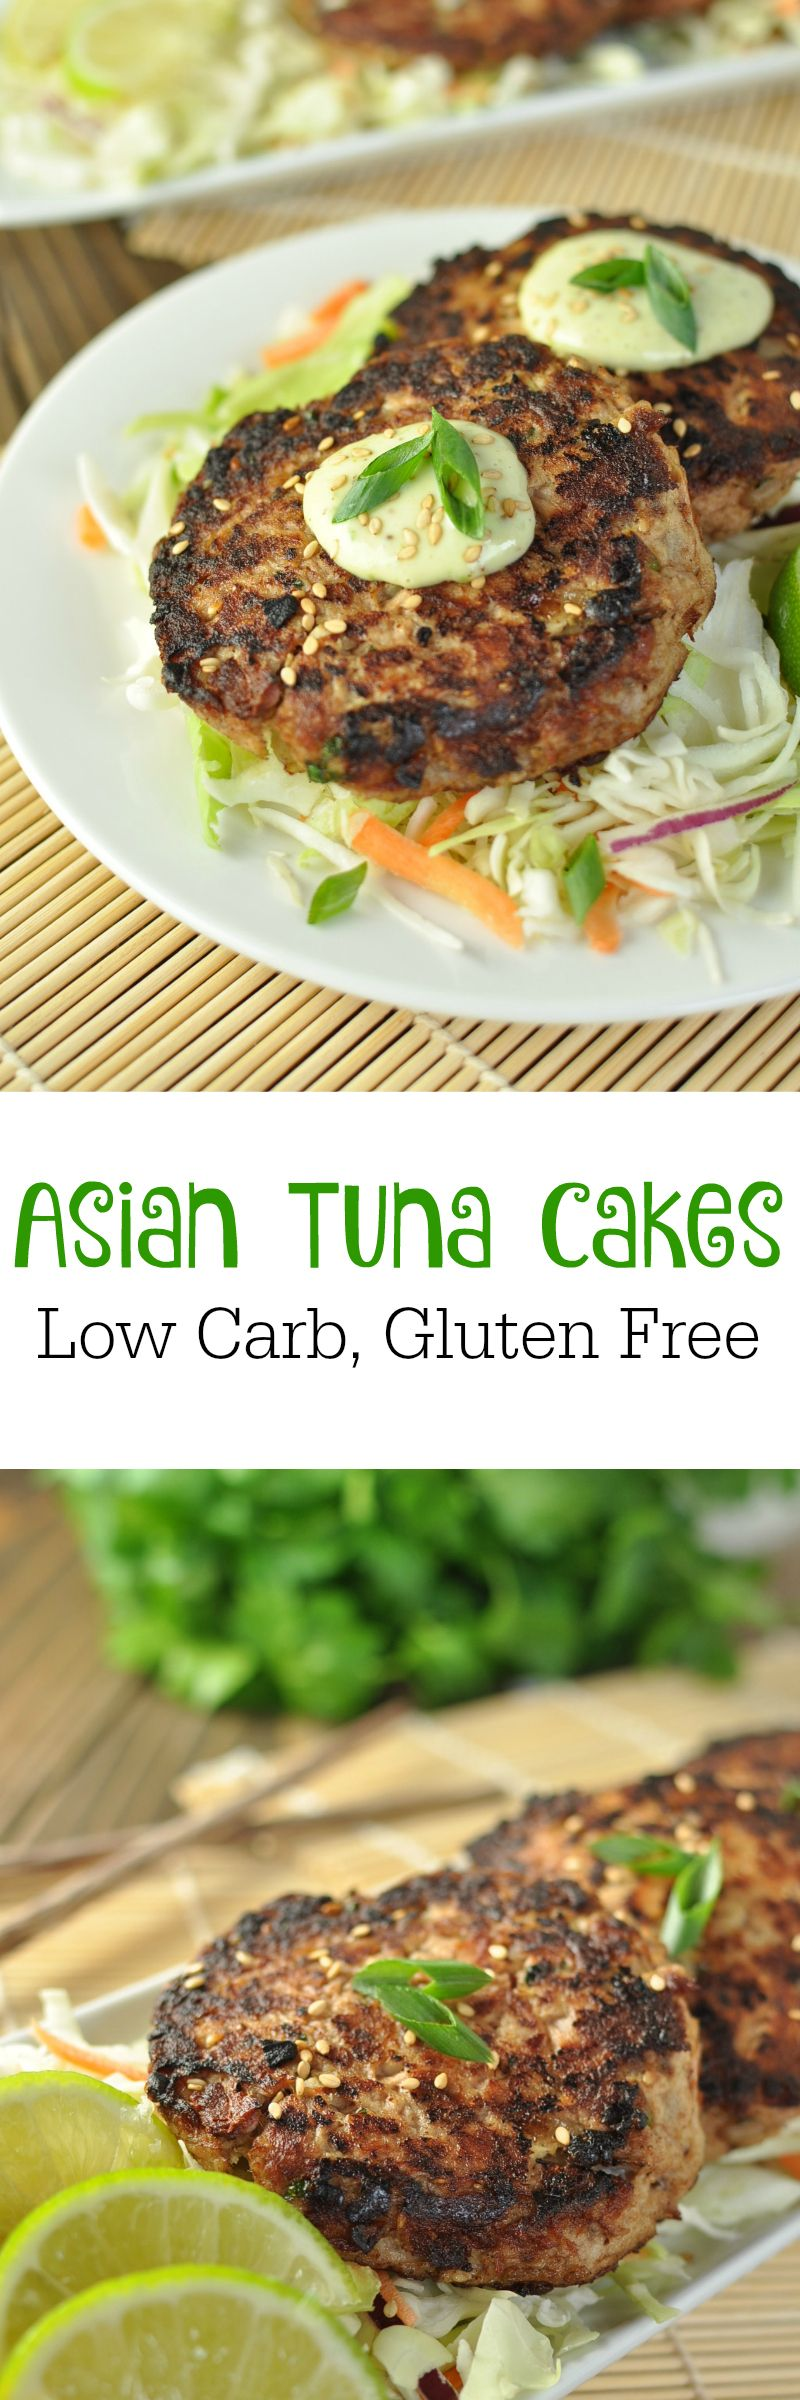 Asian Tuna Cakes - Paleo, Low Carb, Gluten Free | Recipe ...